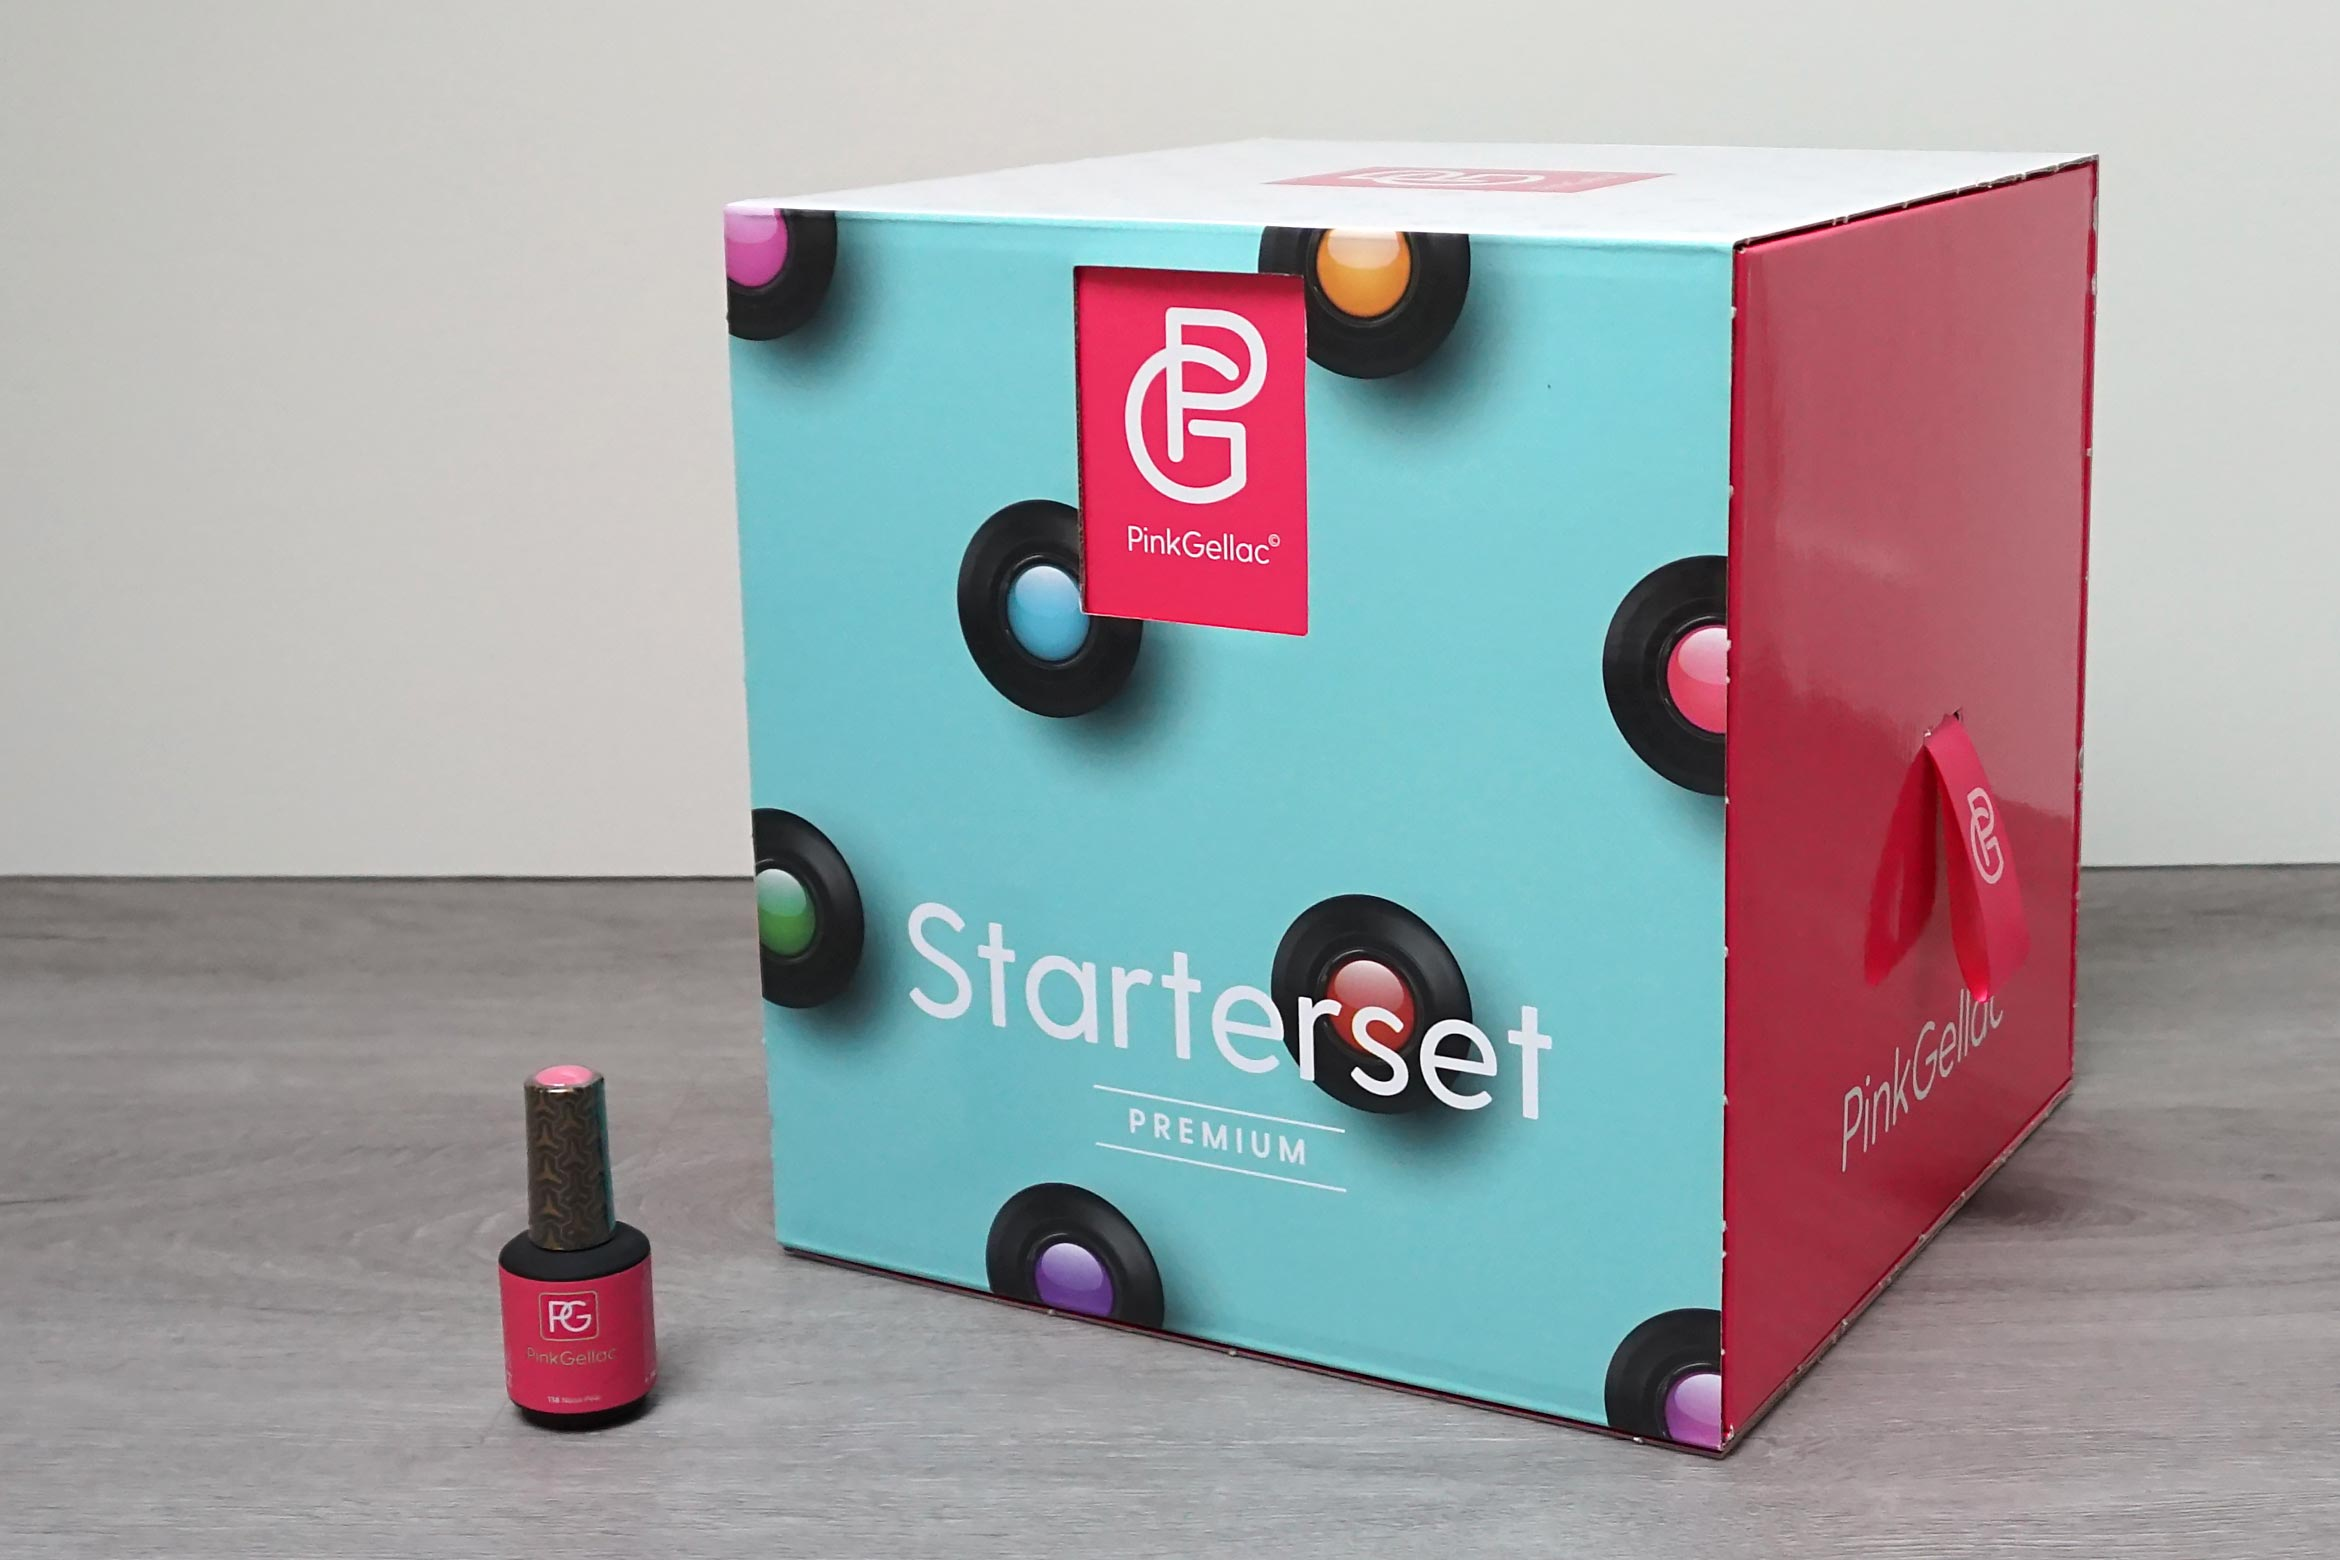 Pink-Gellac-starterset-Premium-Vogue-review